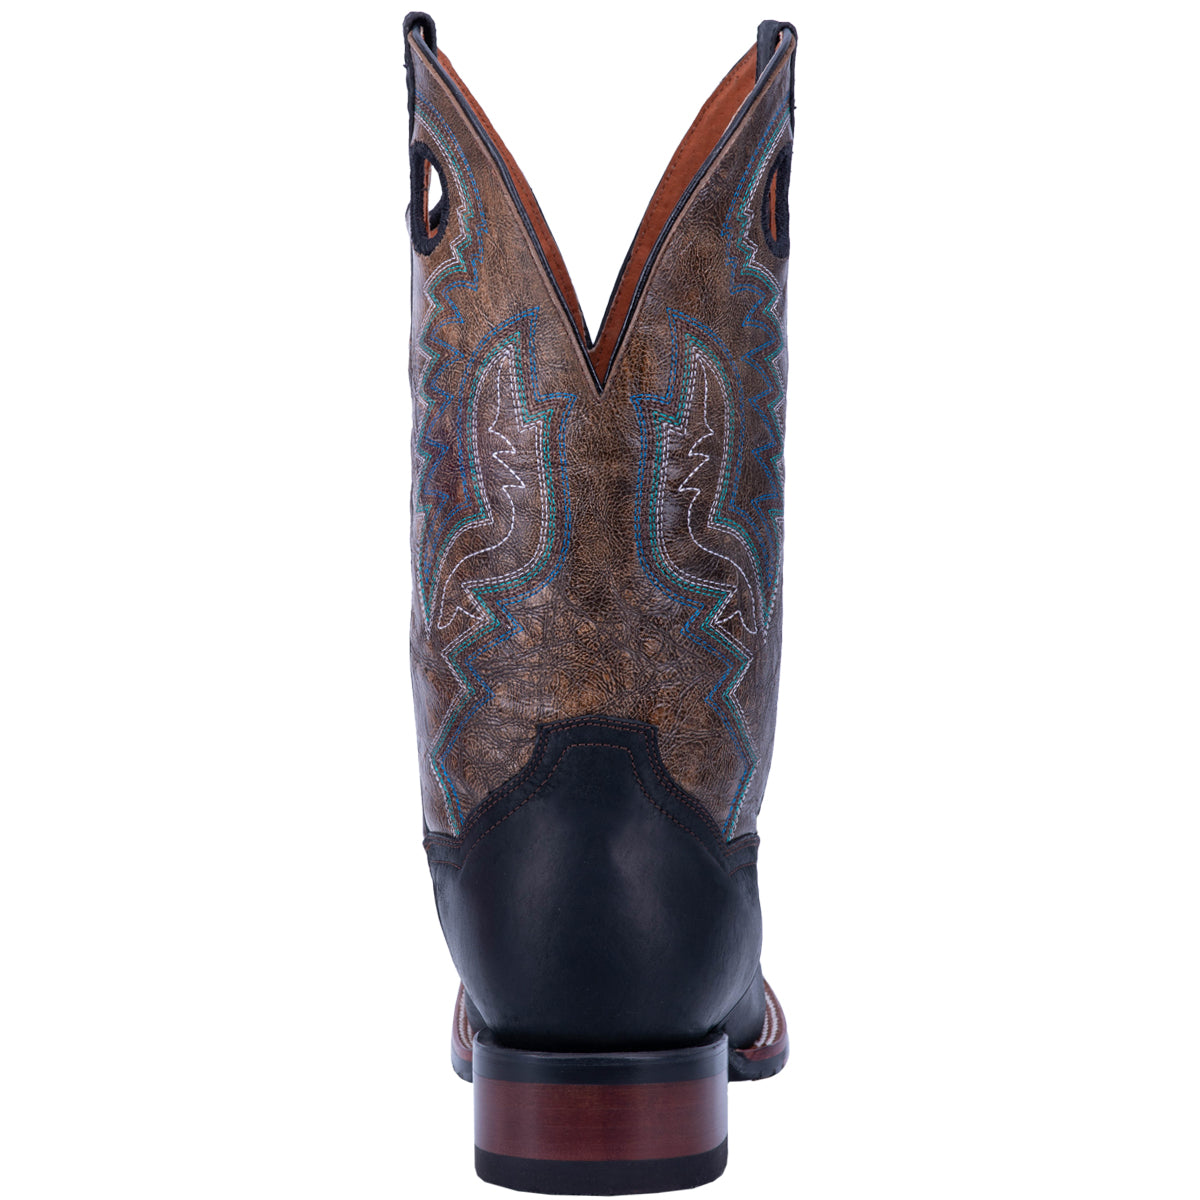 DEUCE LEATHER BOOT 11825131487274